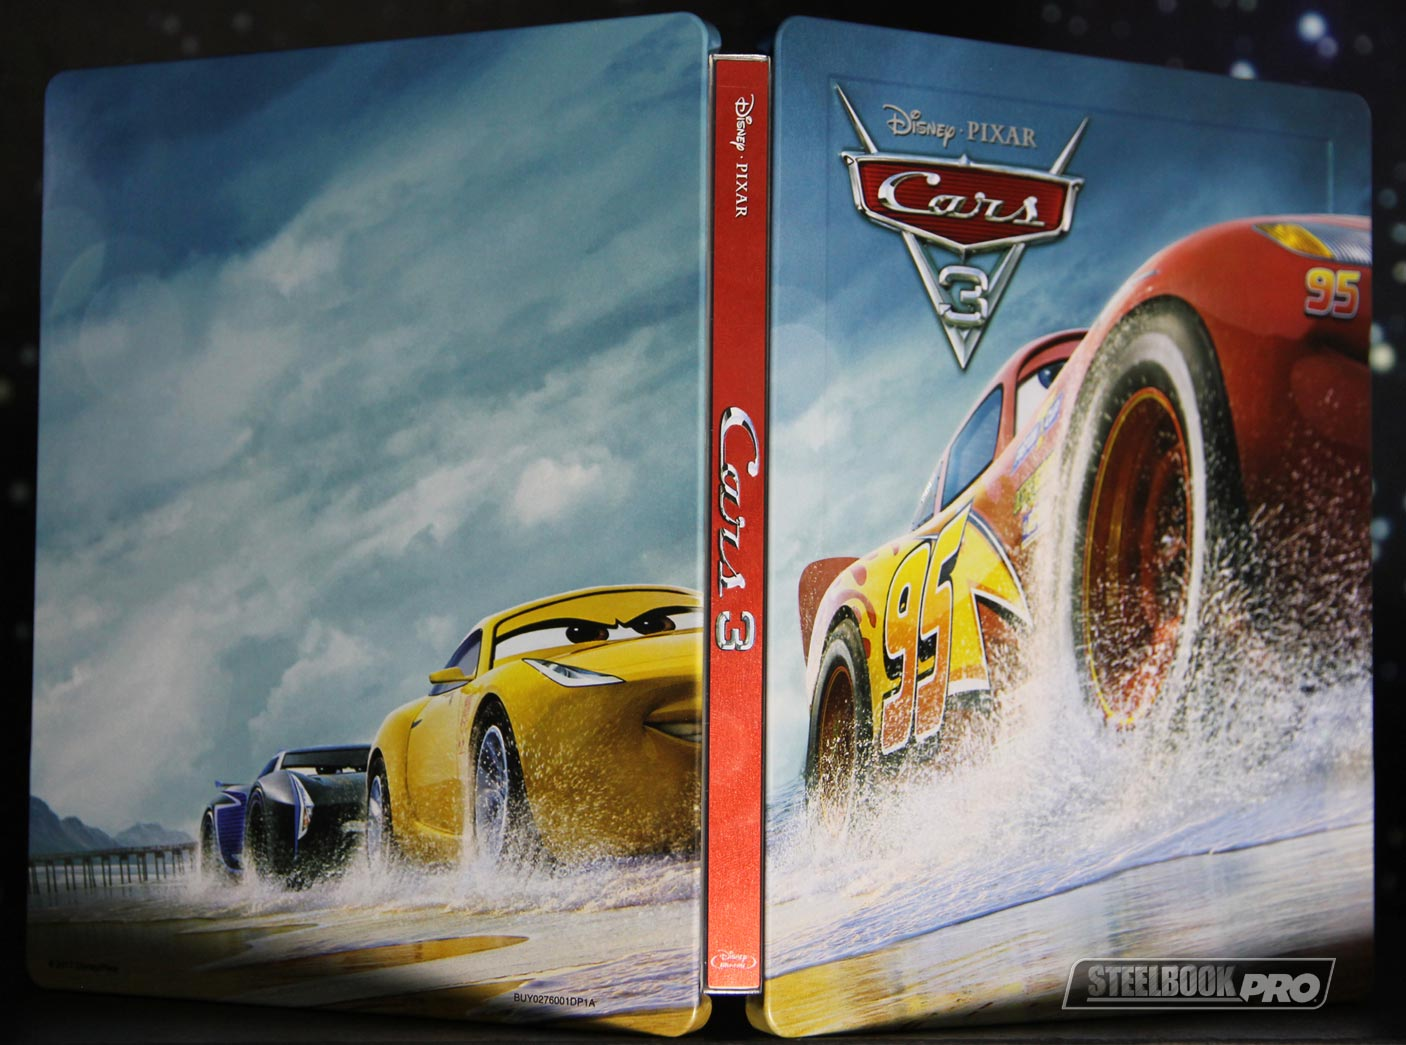 cars 3 3d 2d blu ray steelbook zavvi exclusive uk page 5 hi def ninja pop culture. Black Bedroom Furniture Sets. Home Design Ideas